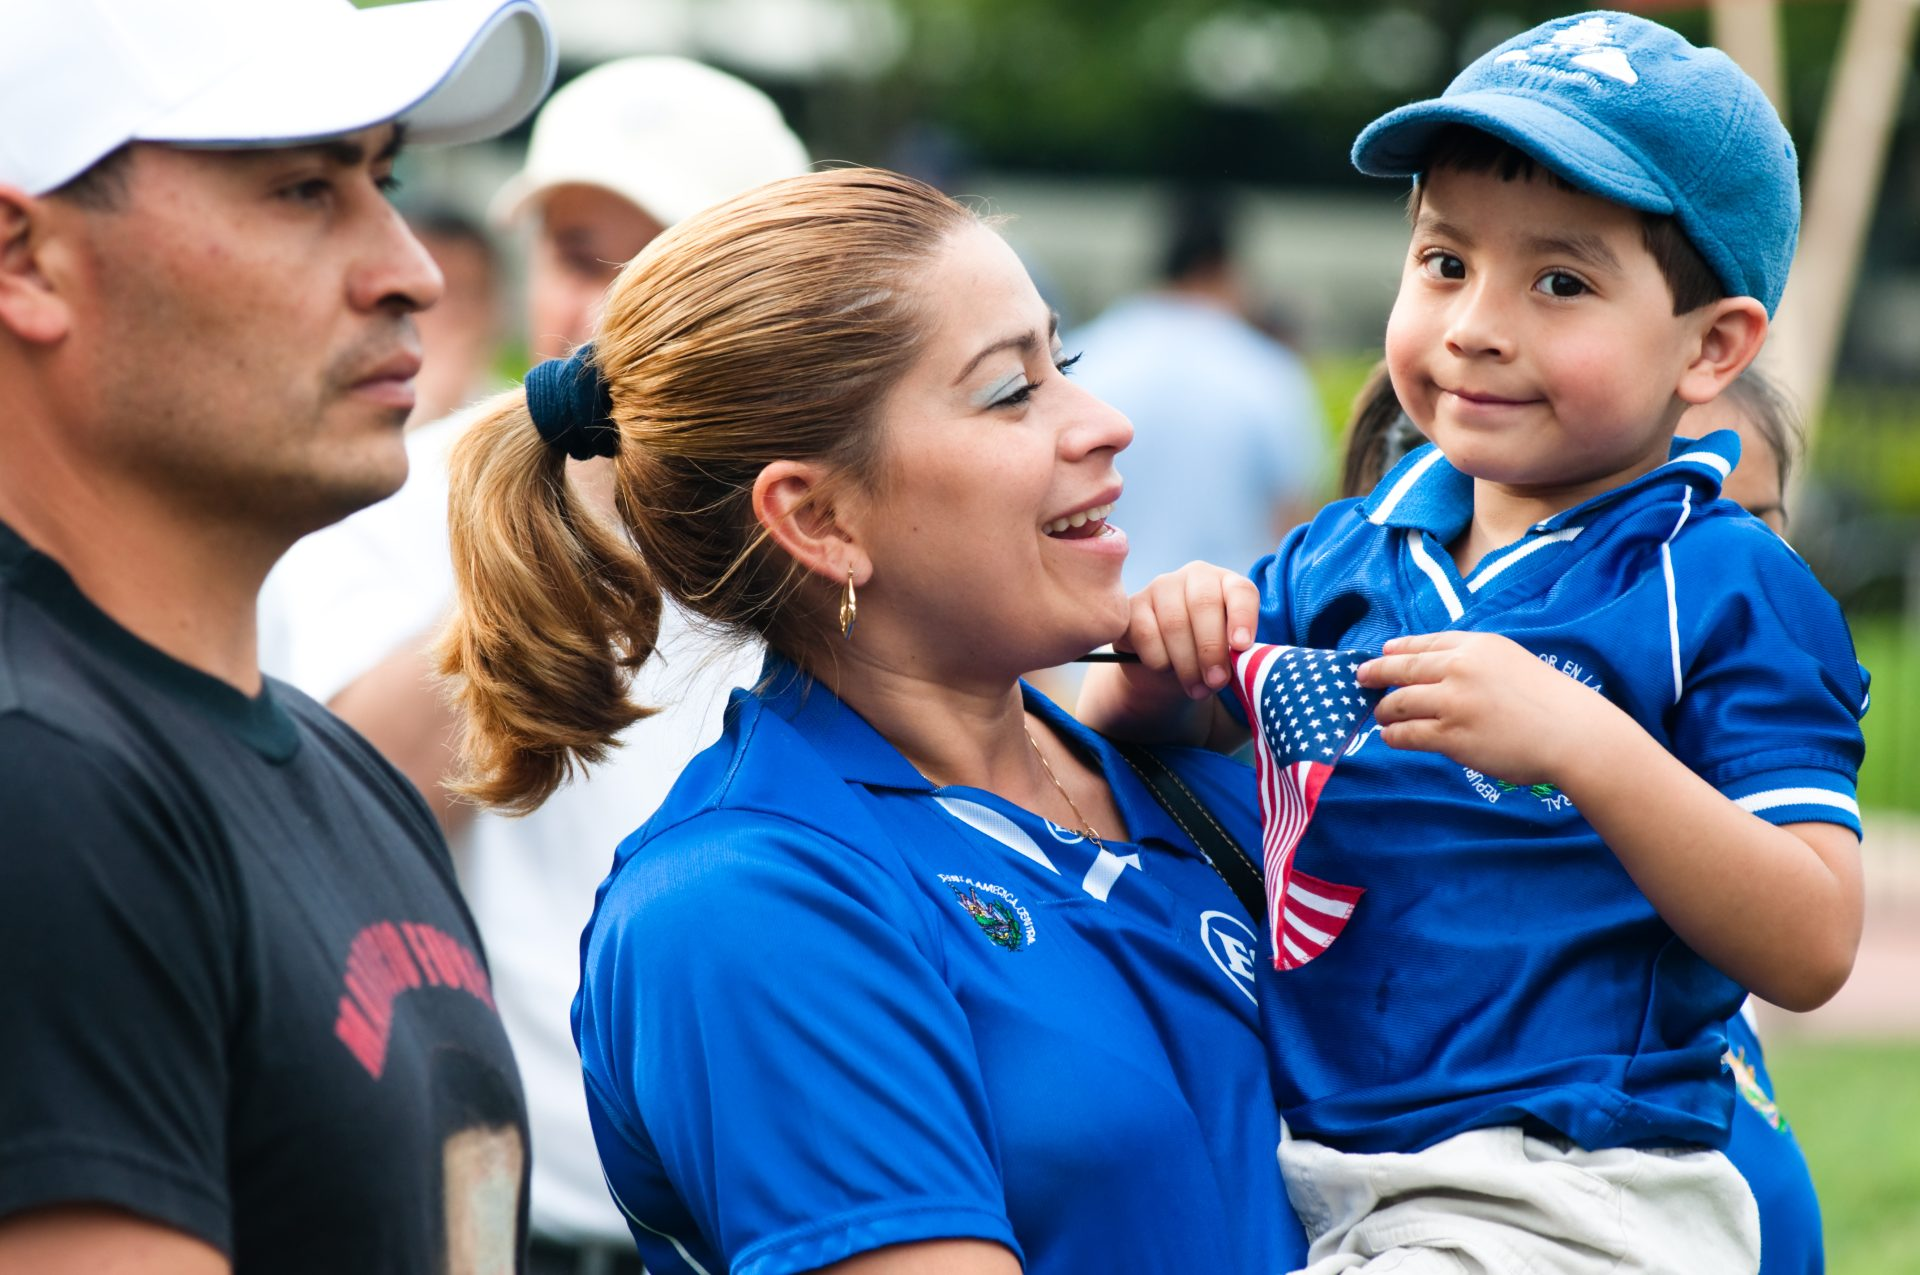 A Latina mother is holding her child who has a small US flag in his hands